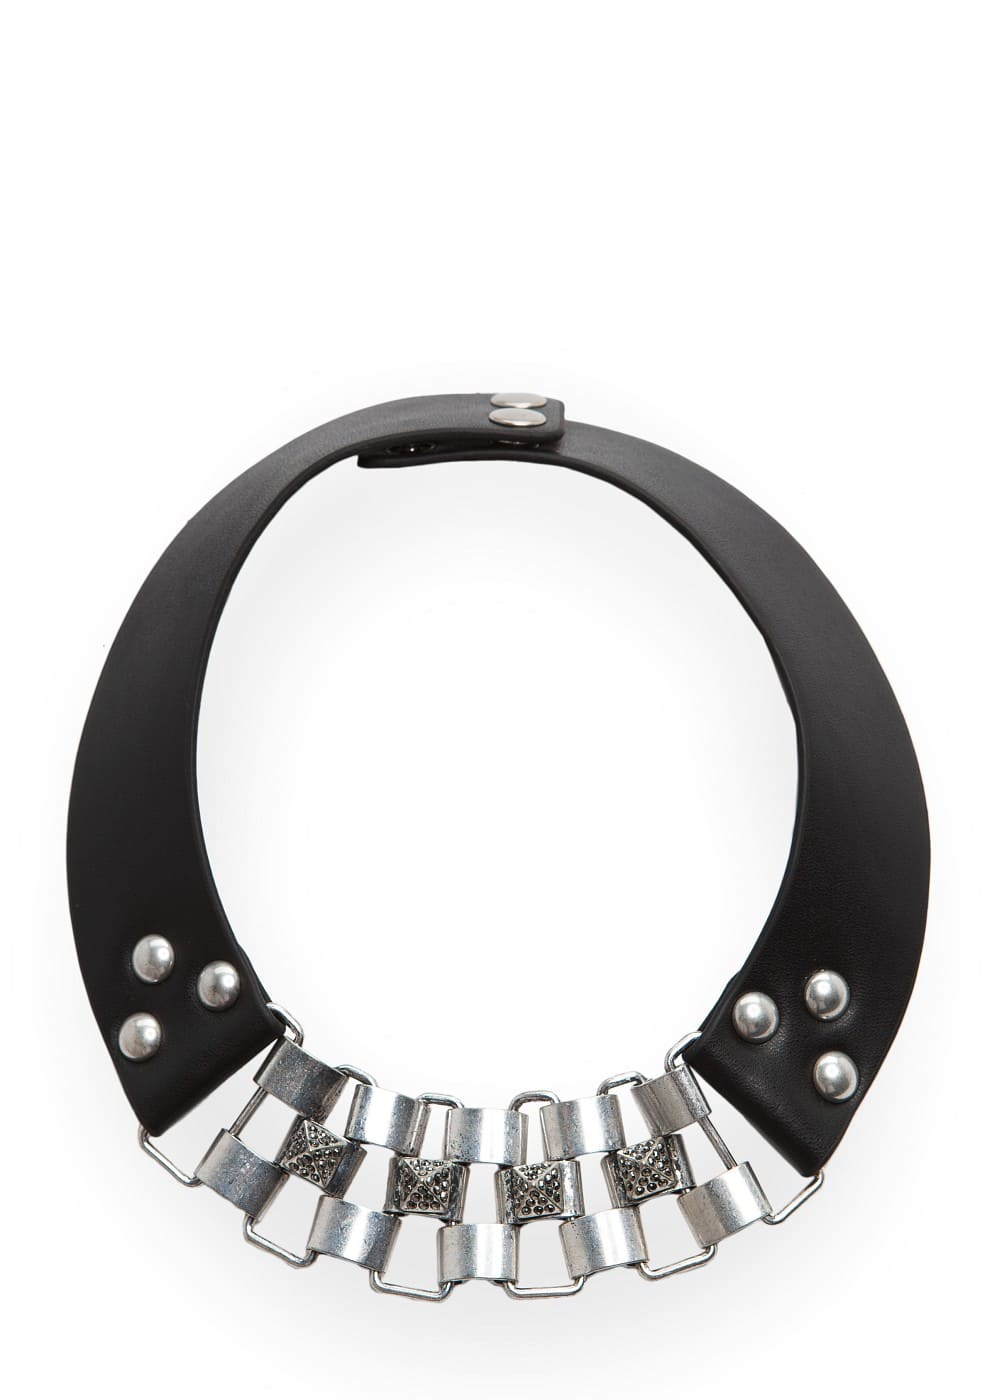 Studded faux leather choker